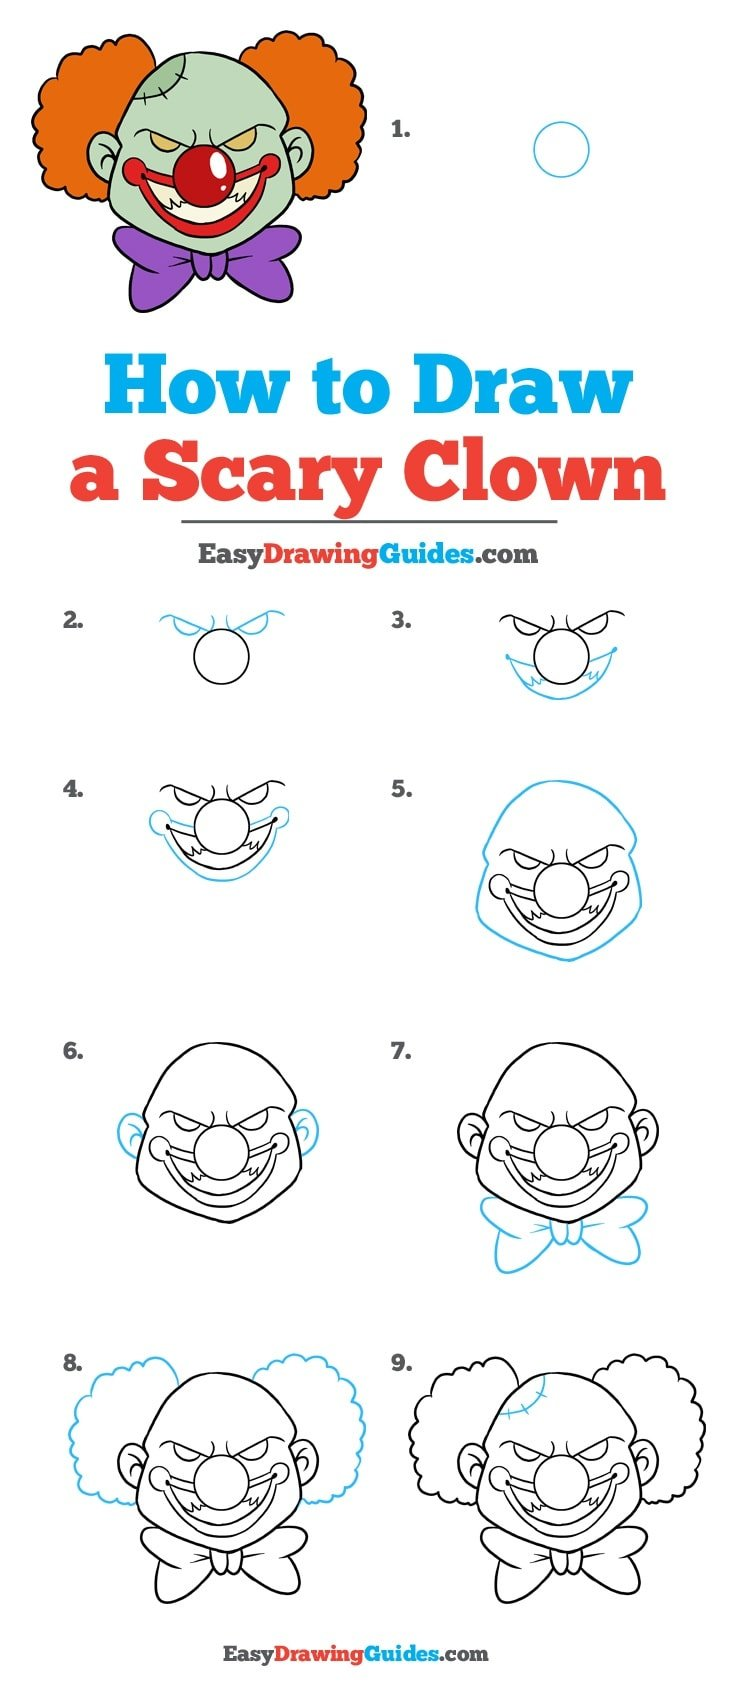 How to Draw Scary Clown